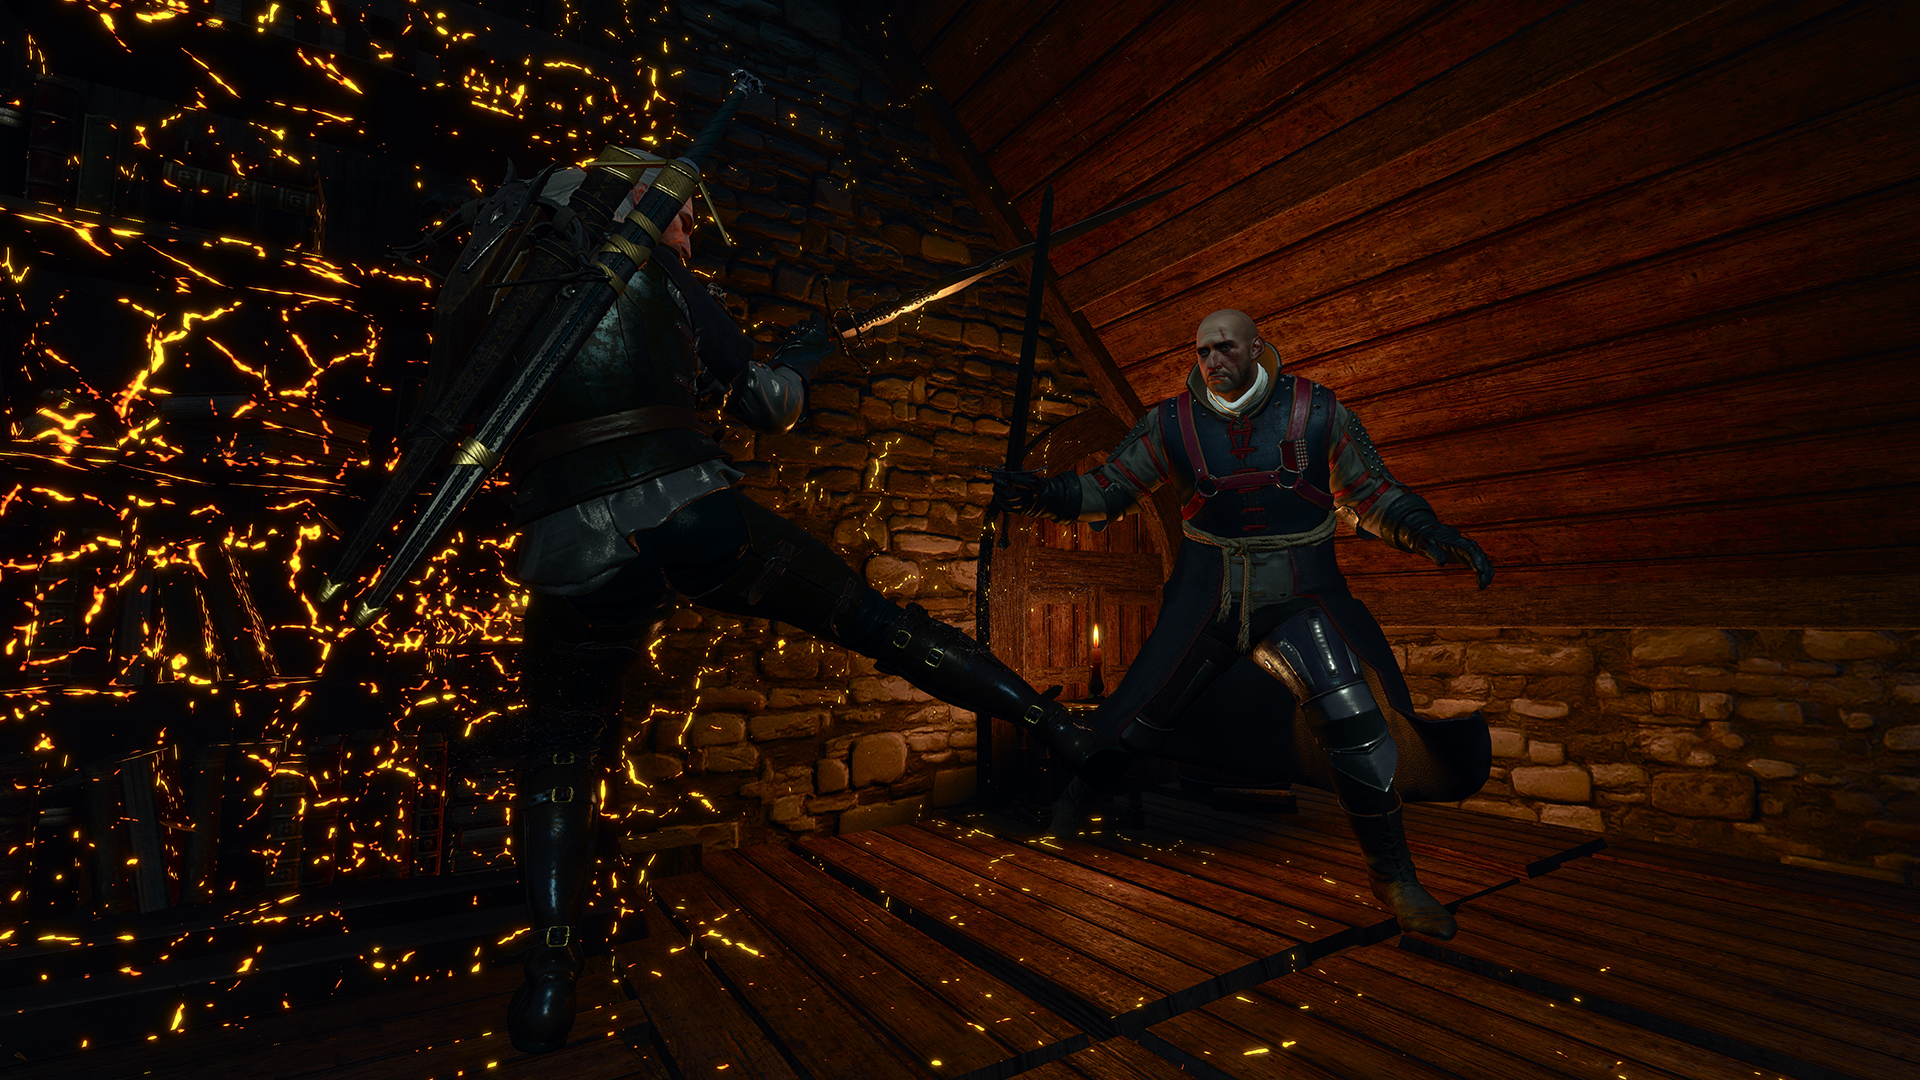 The Witcher 3 CPU performance (and FPS stability) is really